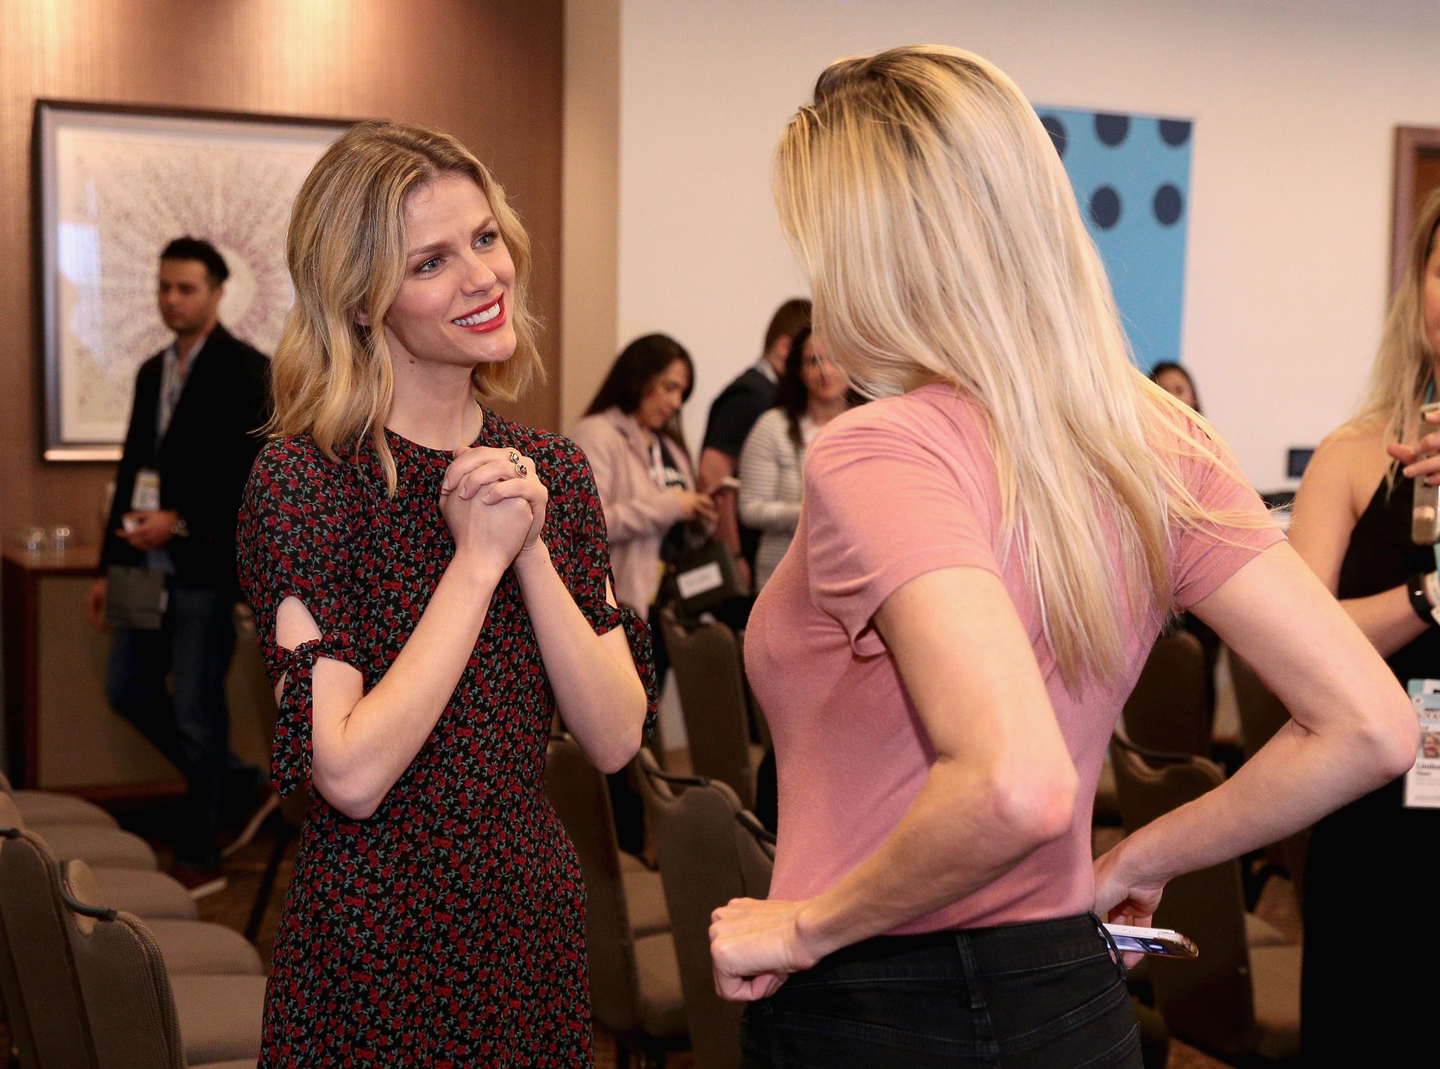 Brooklyn Decker (L) at Heather Dubrow's World Podcast at JW Marriott - Photo by Steve Rogers Photography/Getty Images for SXSW